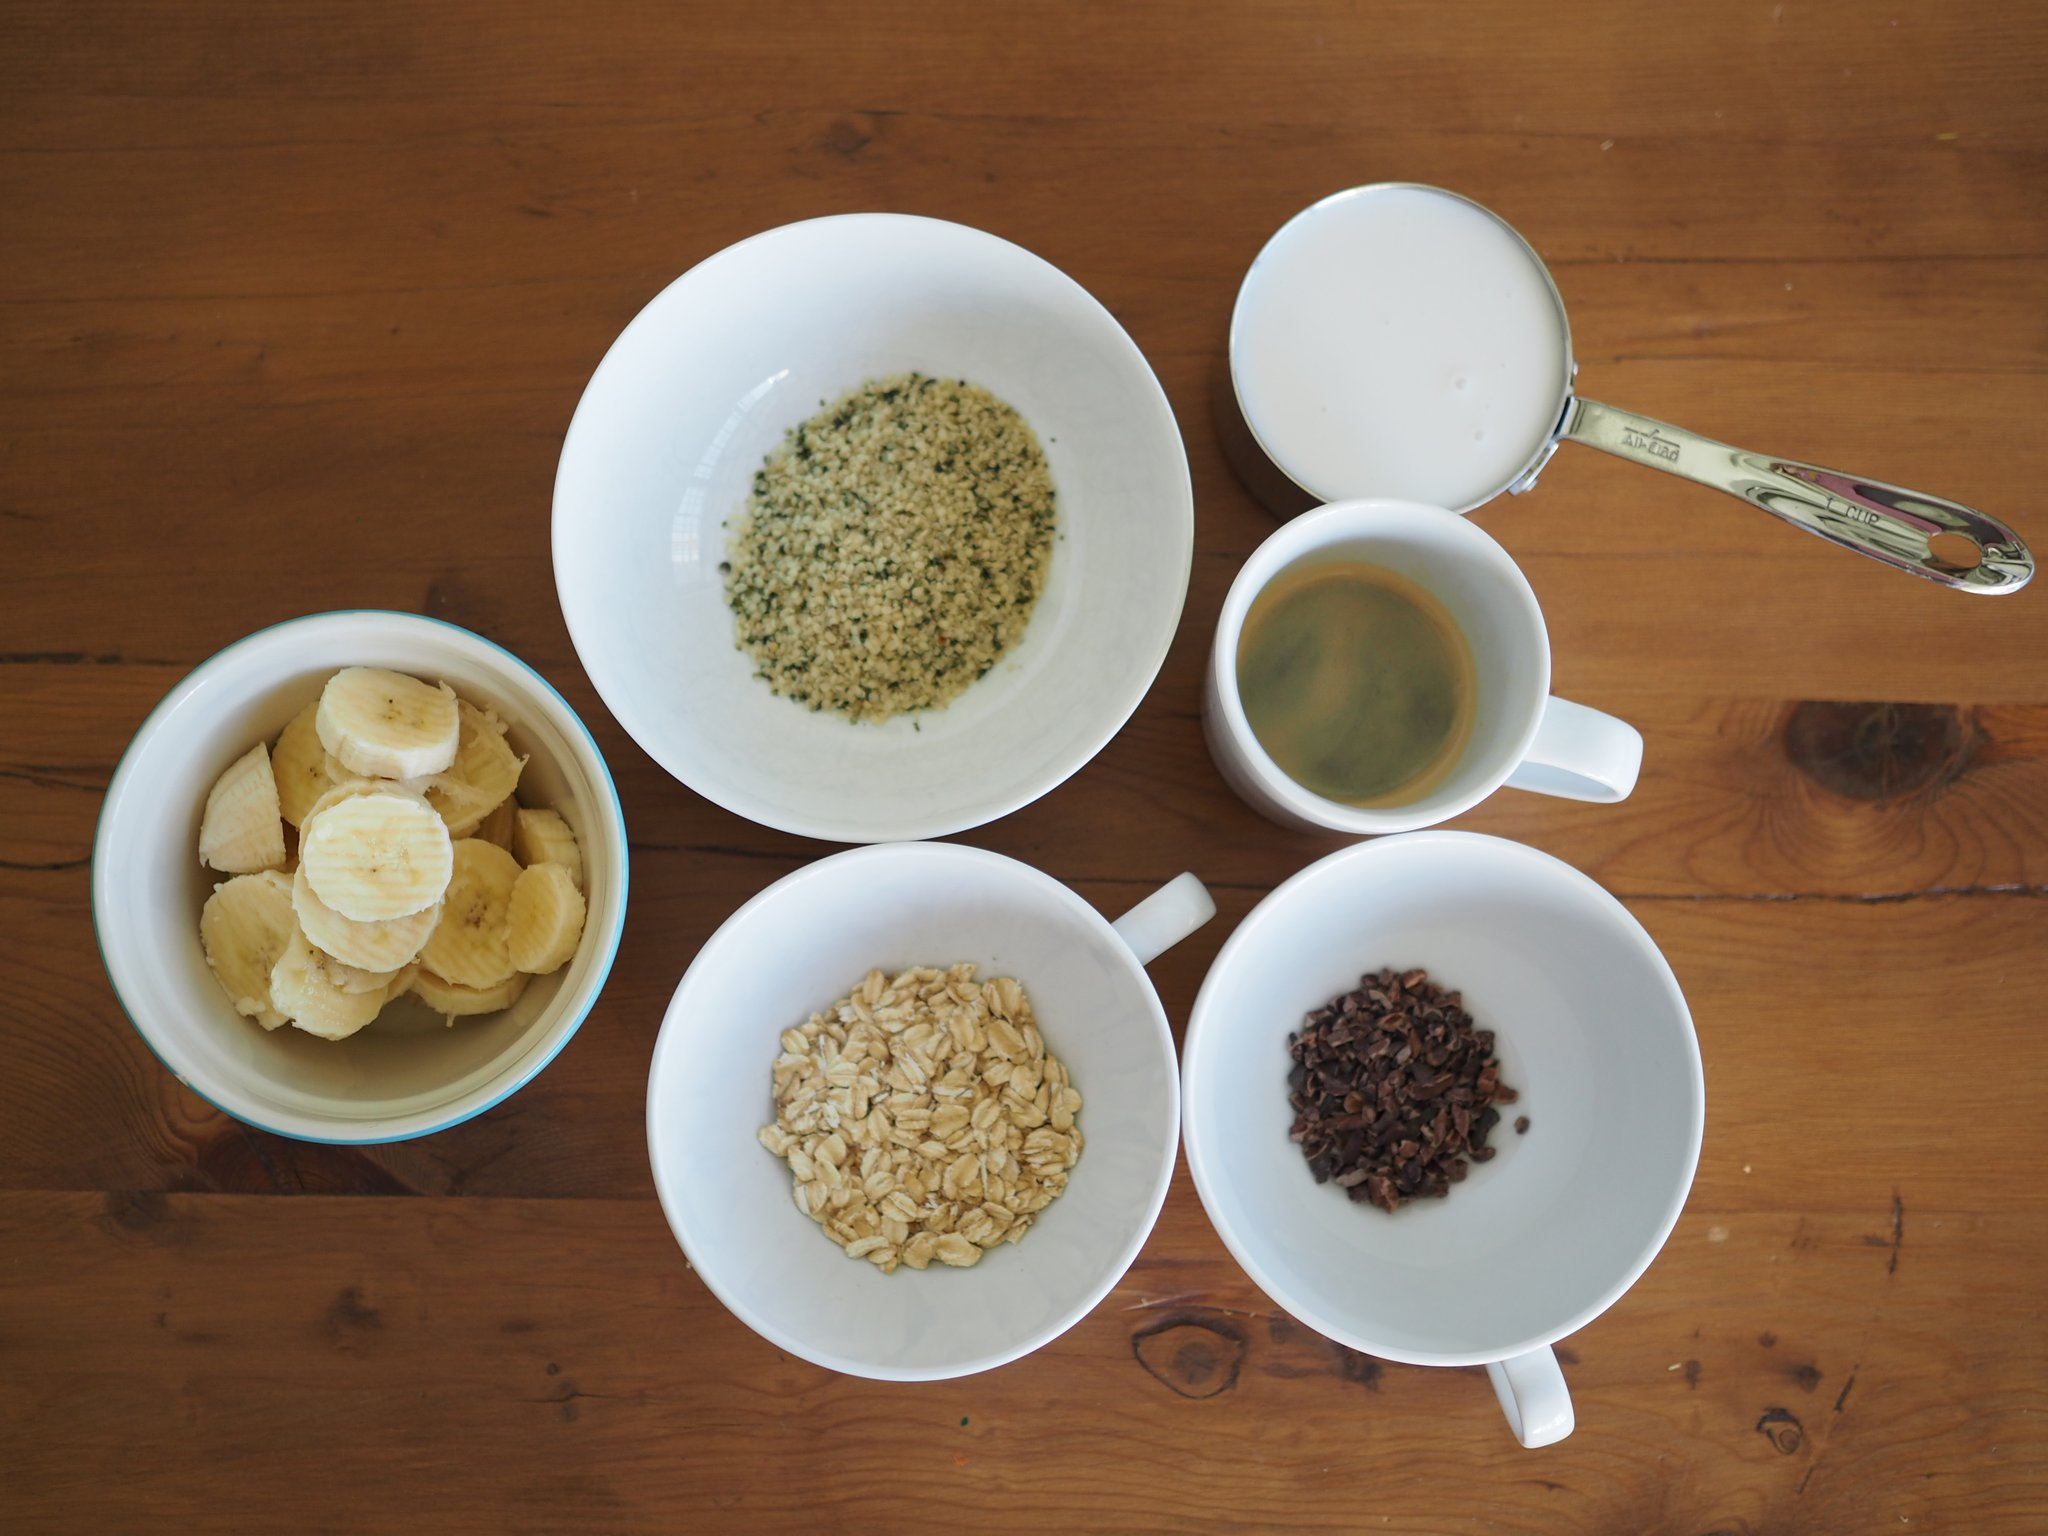 smoothie ingredients in bowls